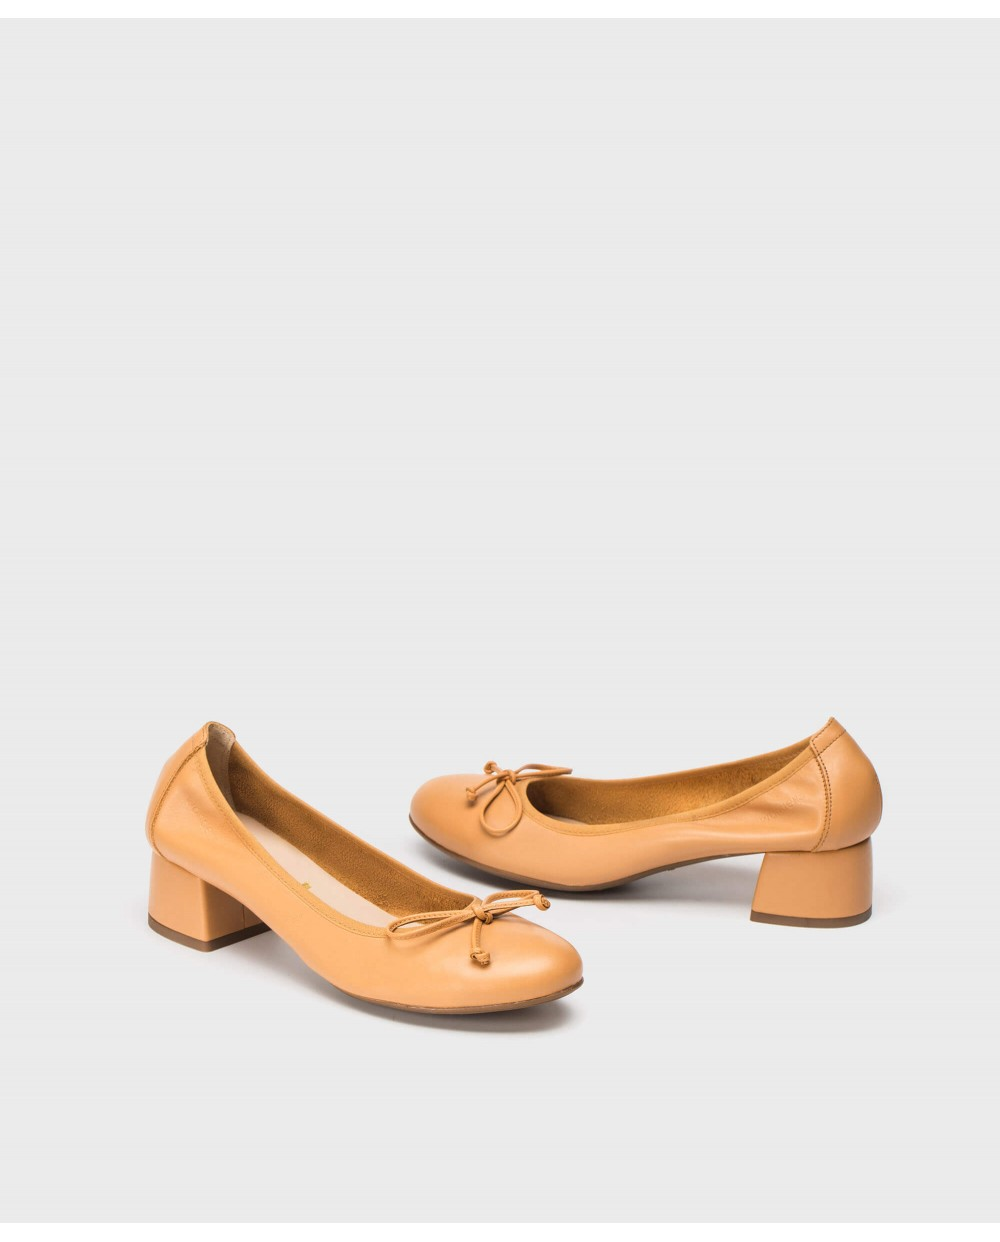 Wonders-Flat Shoes-High heeled ballet pump with bow